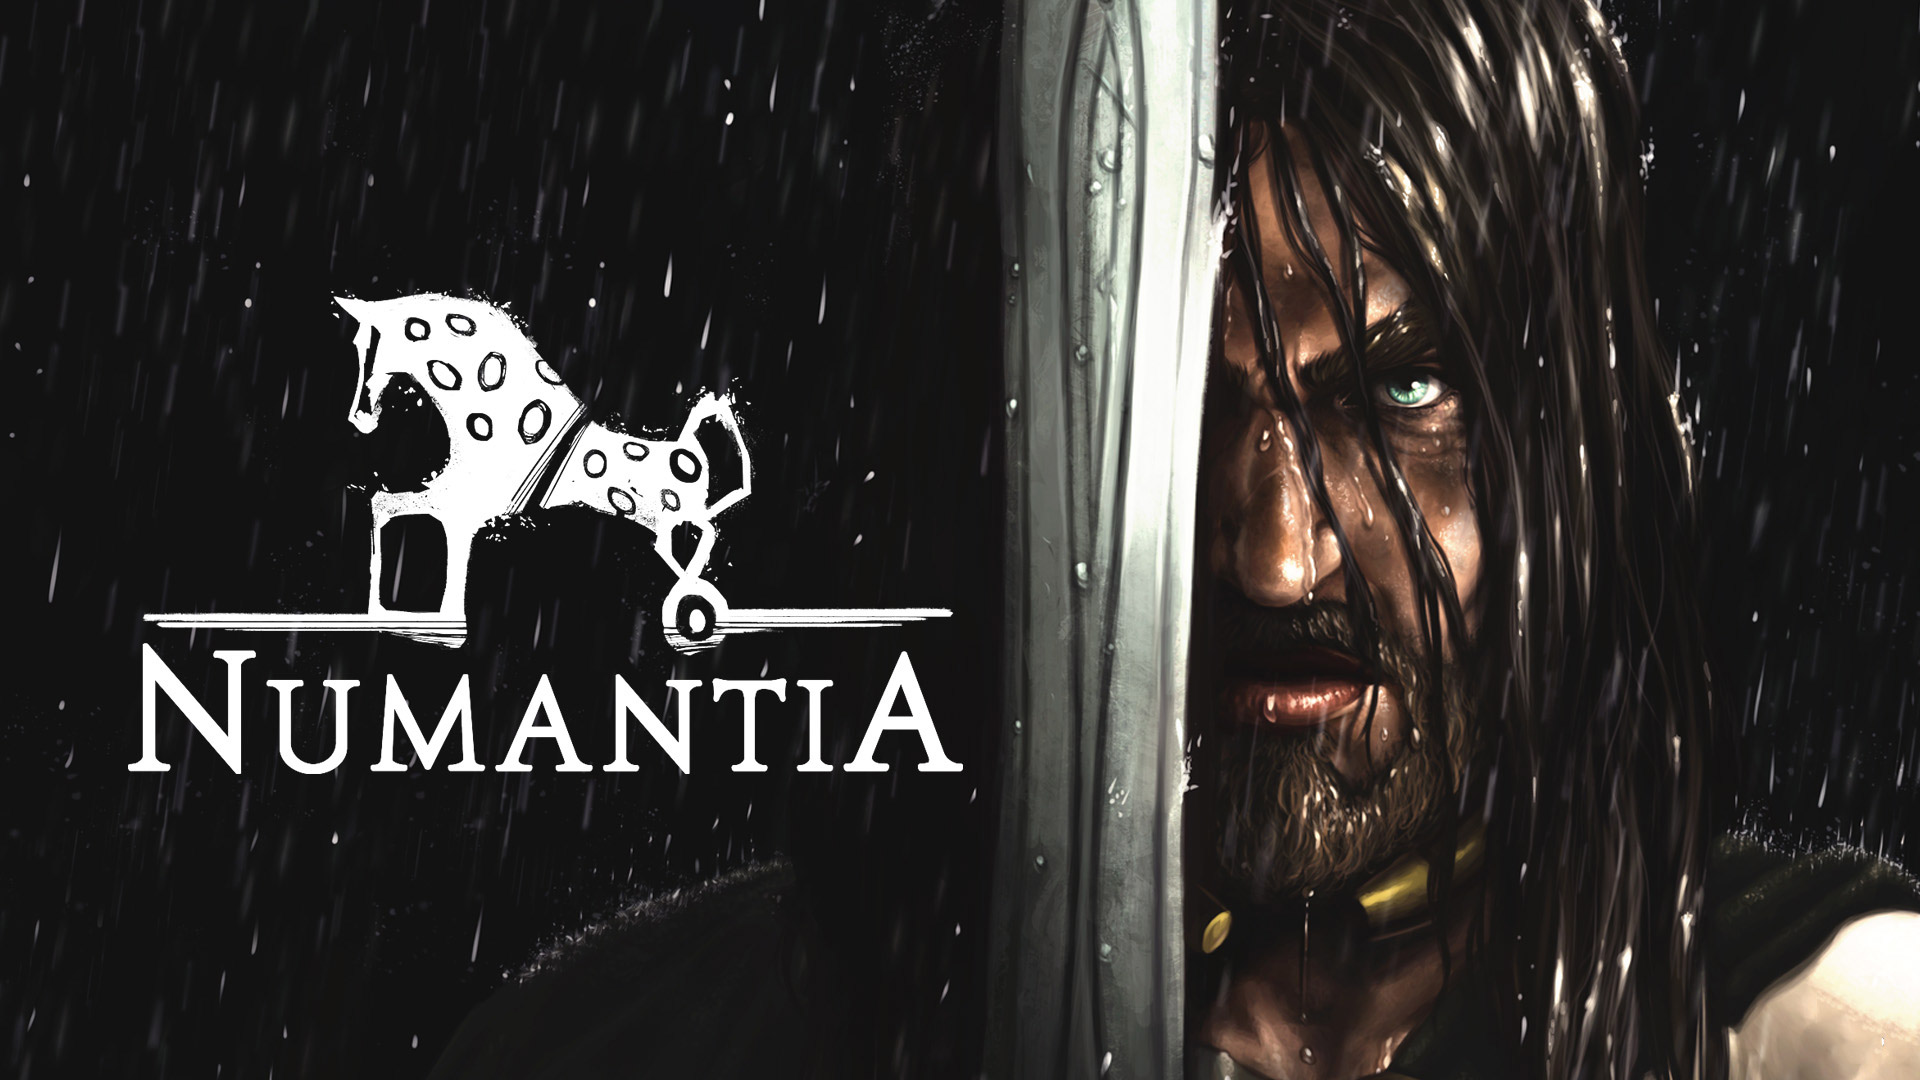 Free Numantia Wallpaper in 1920x1080